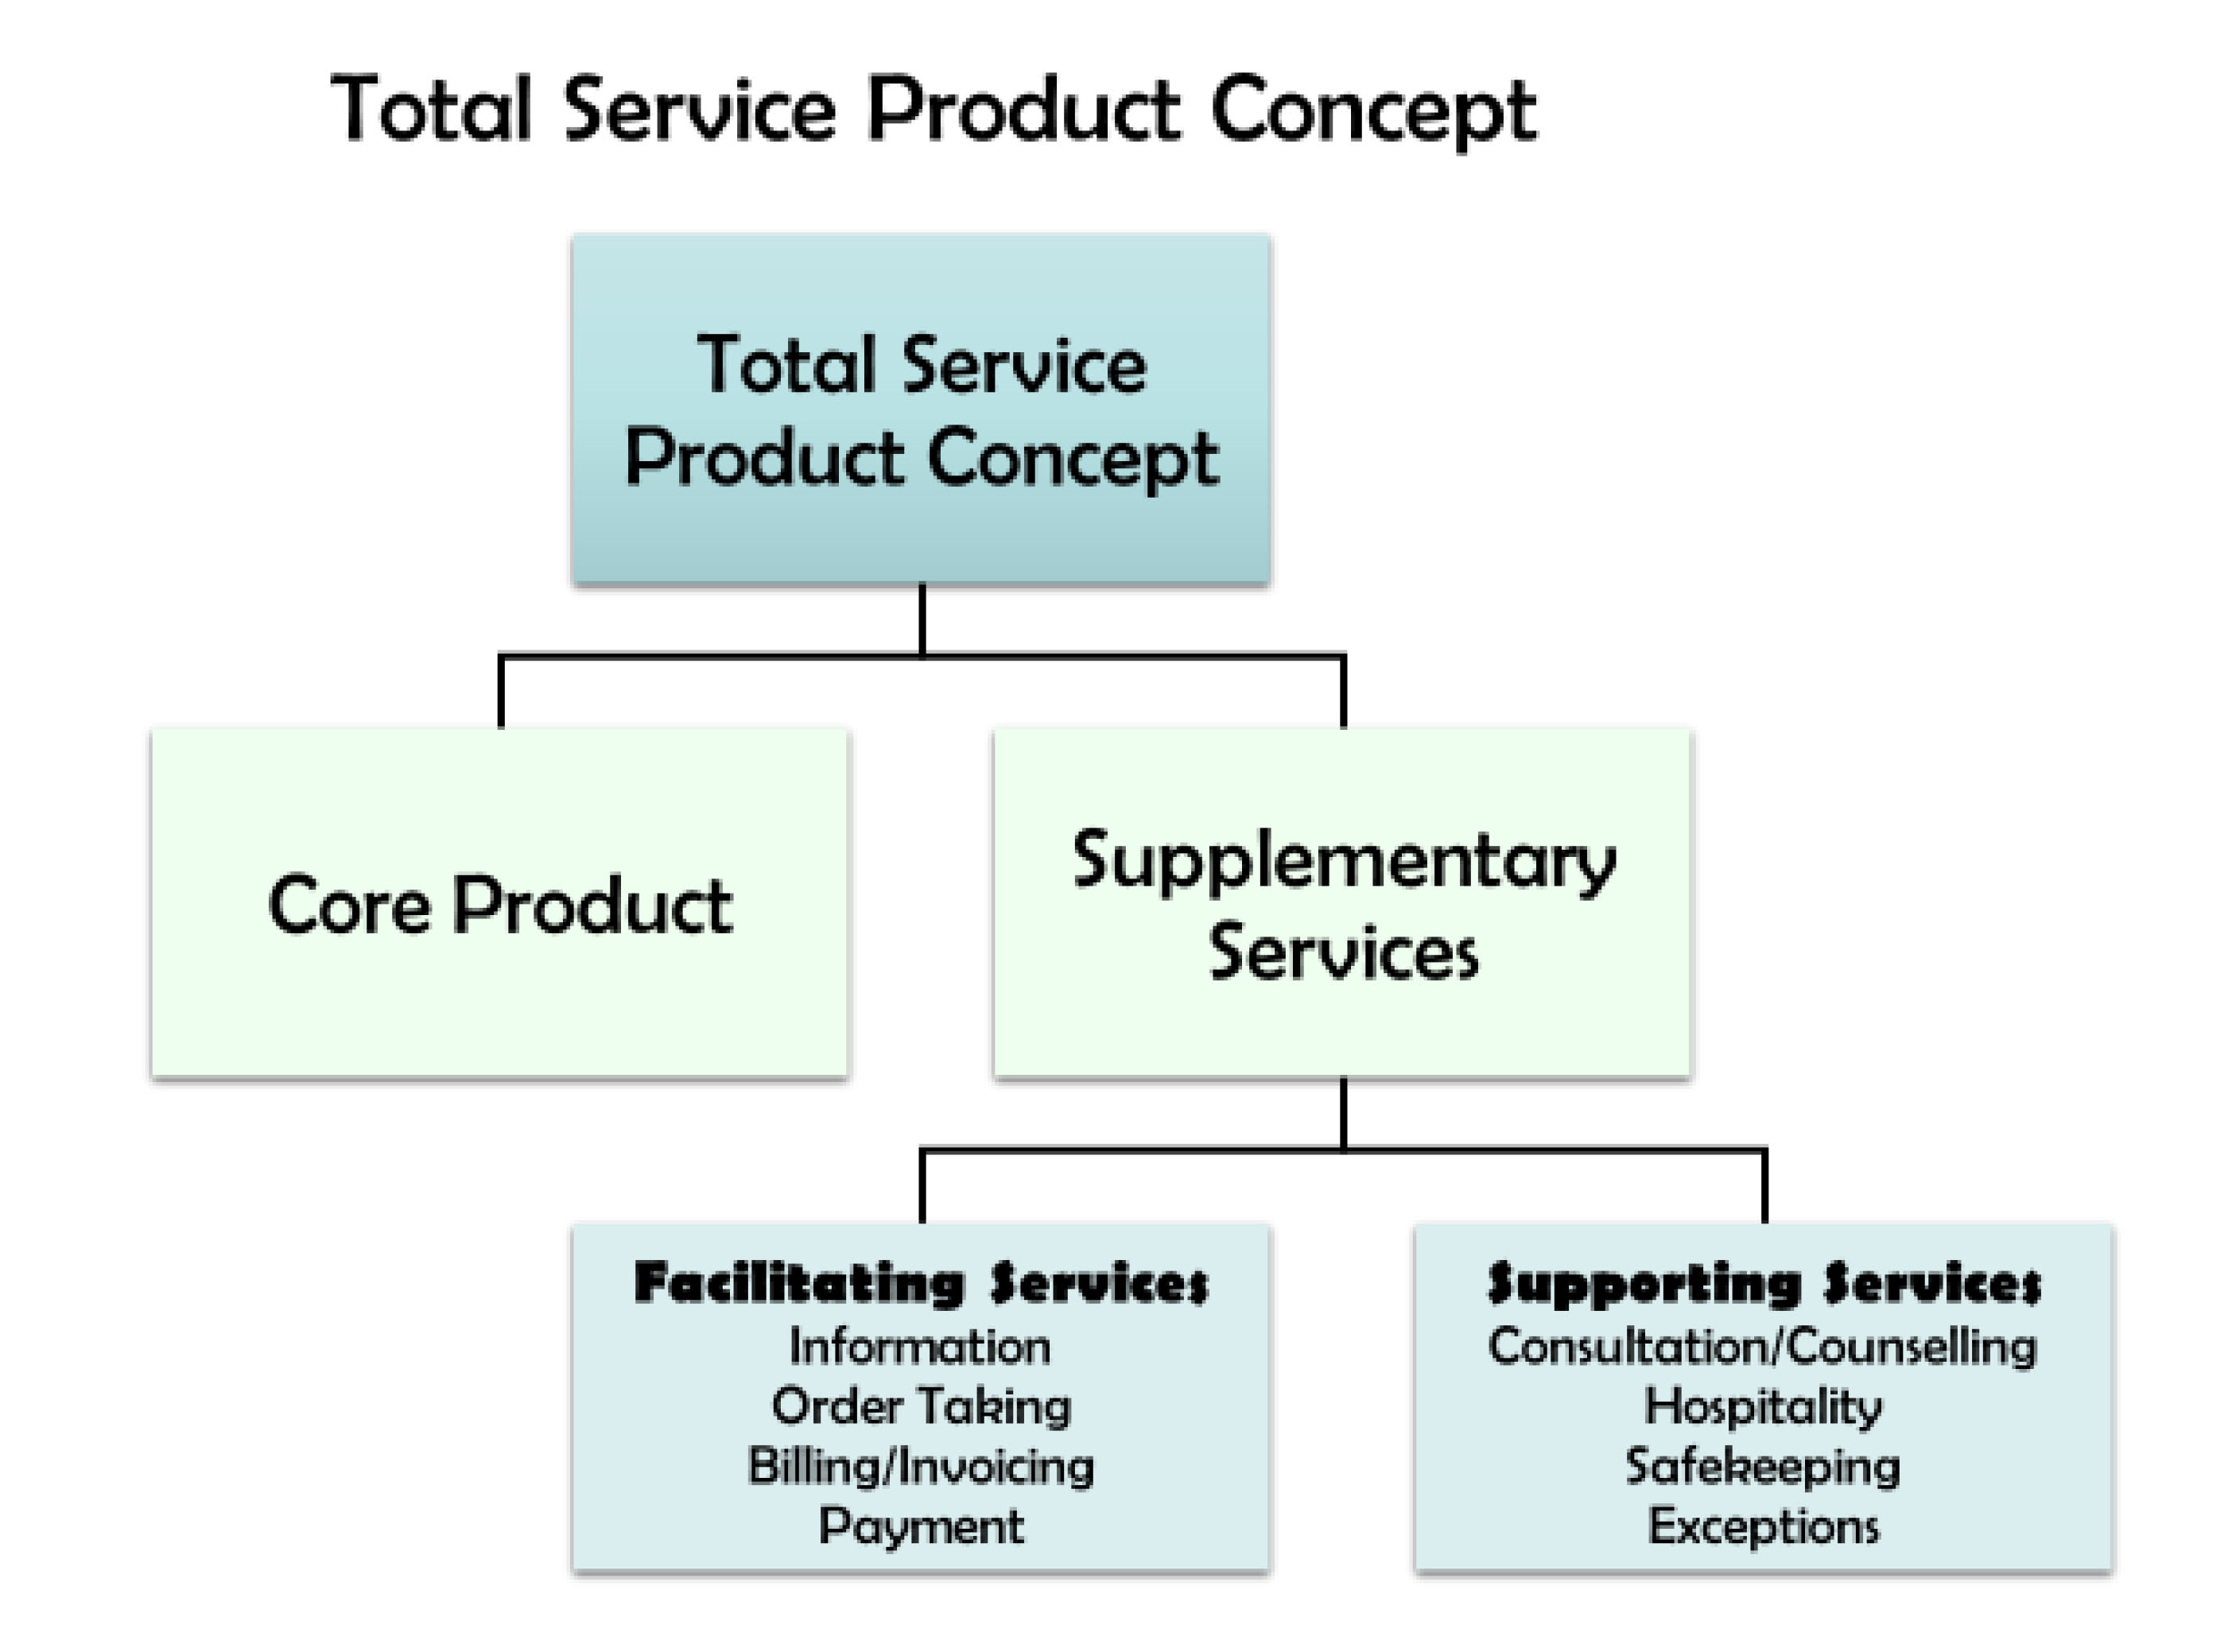 service product marketing essay Assignment 21 - four p's of marketing 1 the four p's in marketing stand for product, price, promotion, and place these four ideas contain the fundamentals of marketing, which are used in conjunction with market segmentation to define a target market to apply the ideas to.